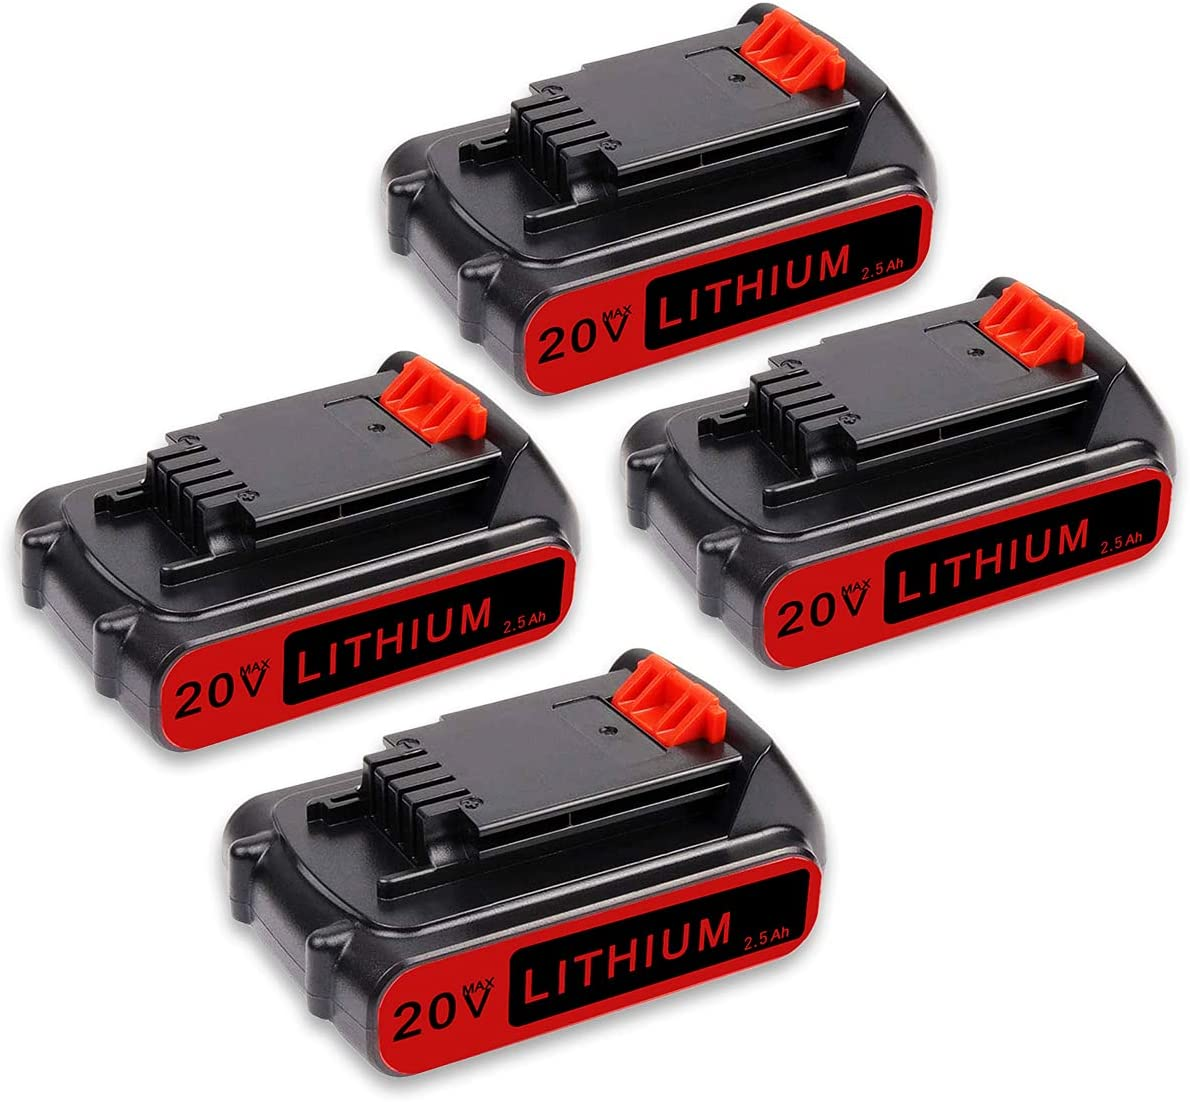 4Pack 2.5Ah 20V Special price for a limited time LBXR20 New item Battery Decker for Li Black Replacement